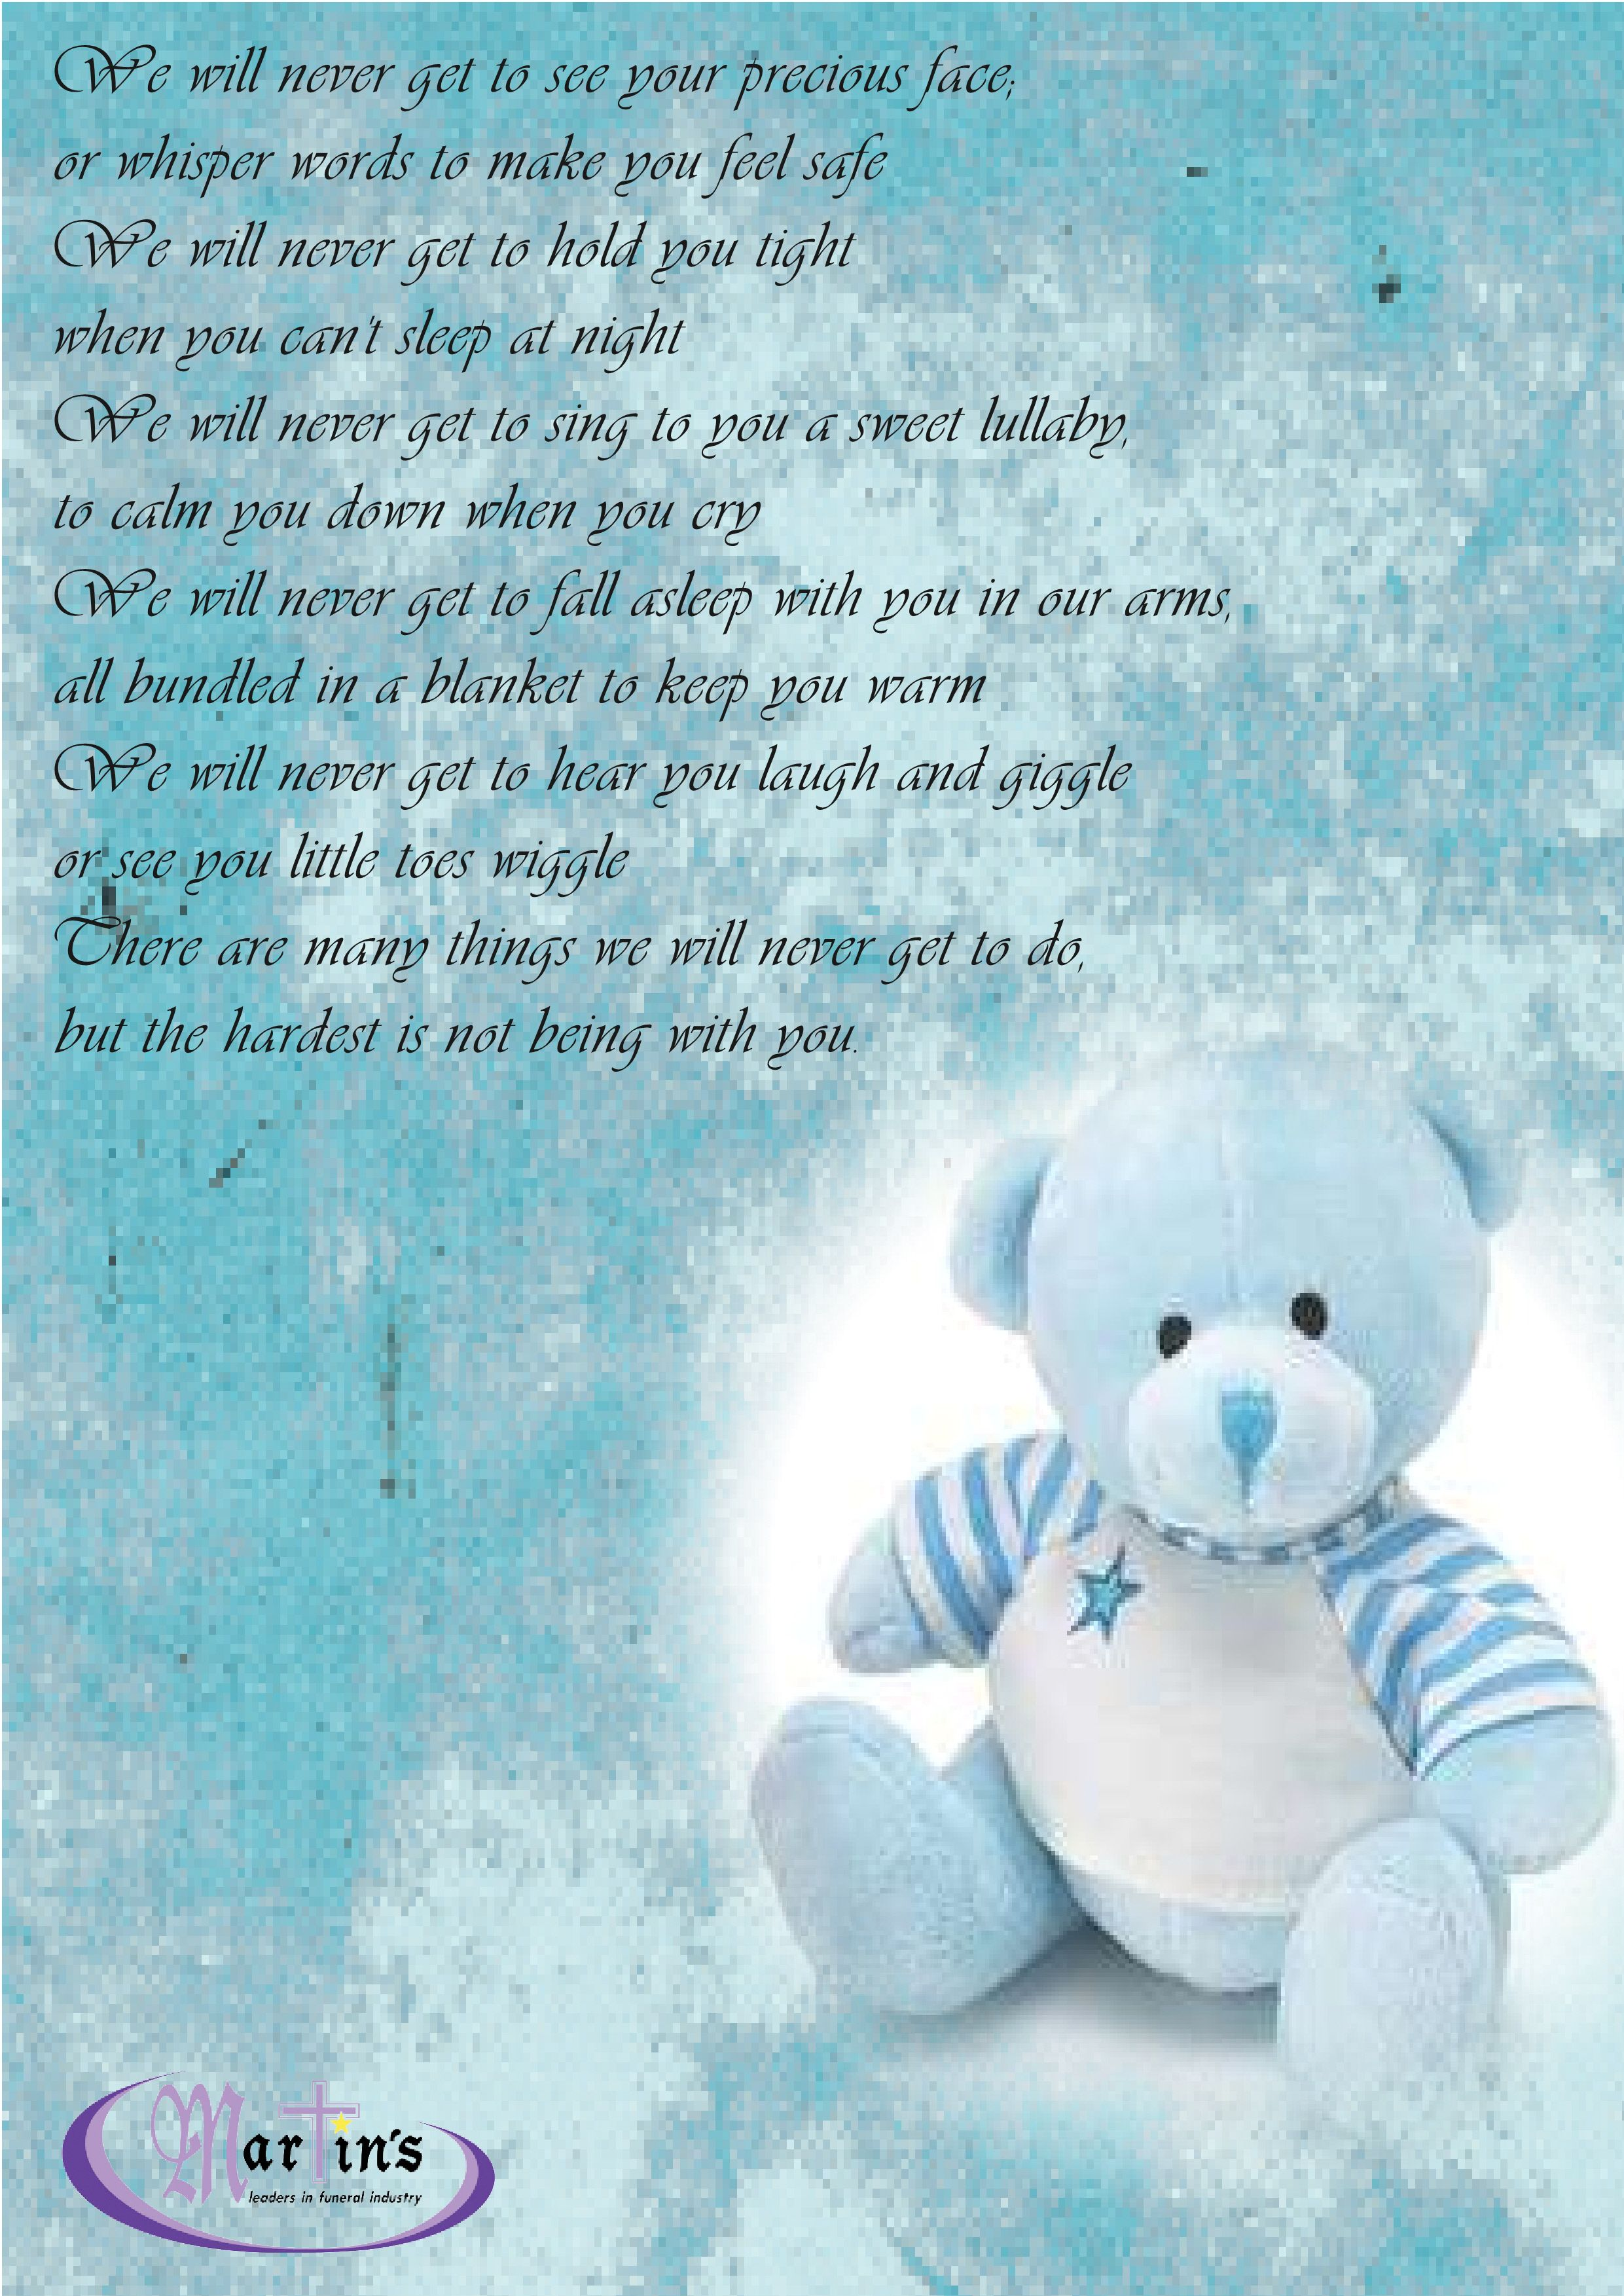 Sympathy poem for a little boy martins funerals poems funeral poem card for a litle stillborn baby boy martins funerals amanzimtoti kristyandbryce Images